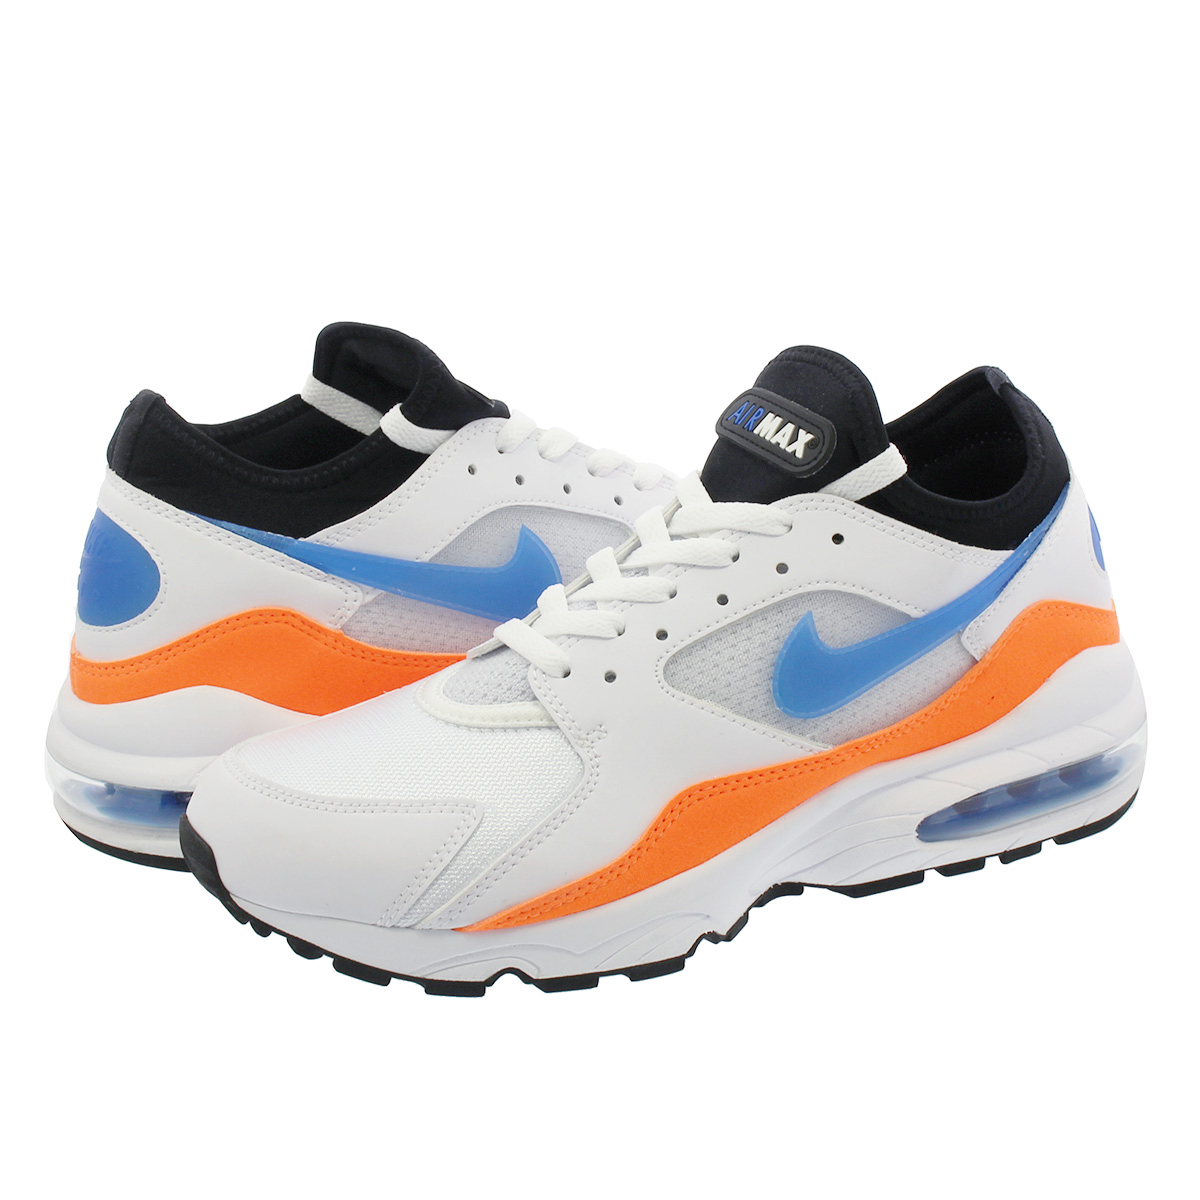 1d34f4fd6a5 SELECT SHOP LOWTEX  NIKE AIR MAX 93 Kie Ney AMAX 93 WHITE BLUE NEBULA TOTAL  ORANGE BLACK 306